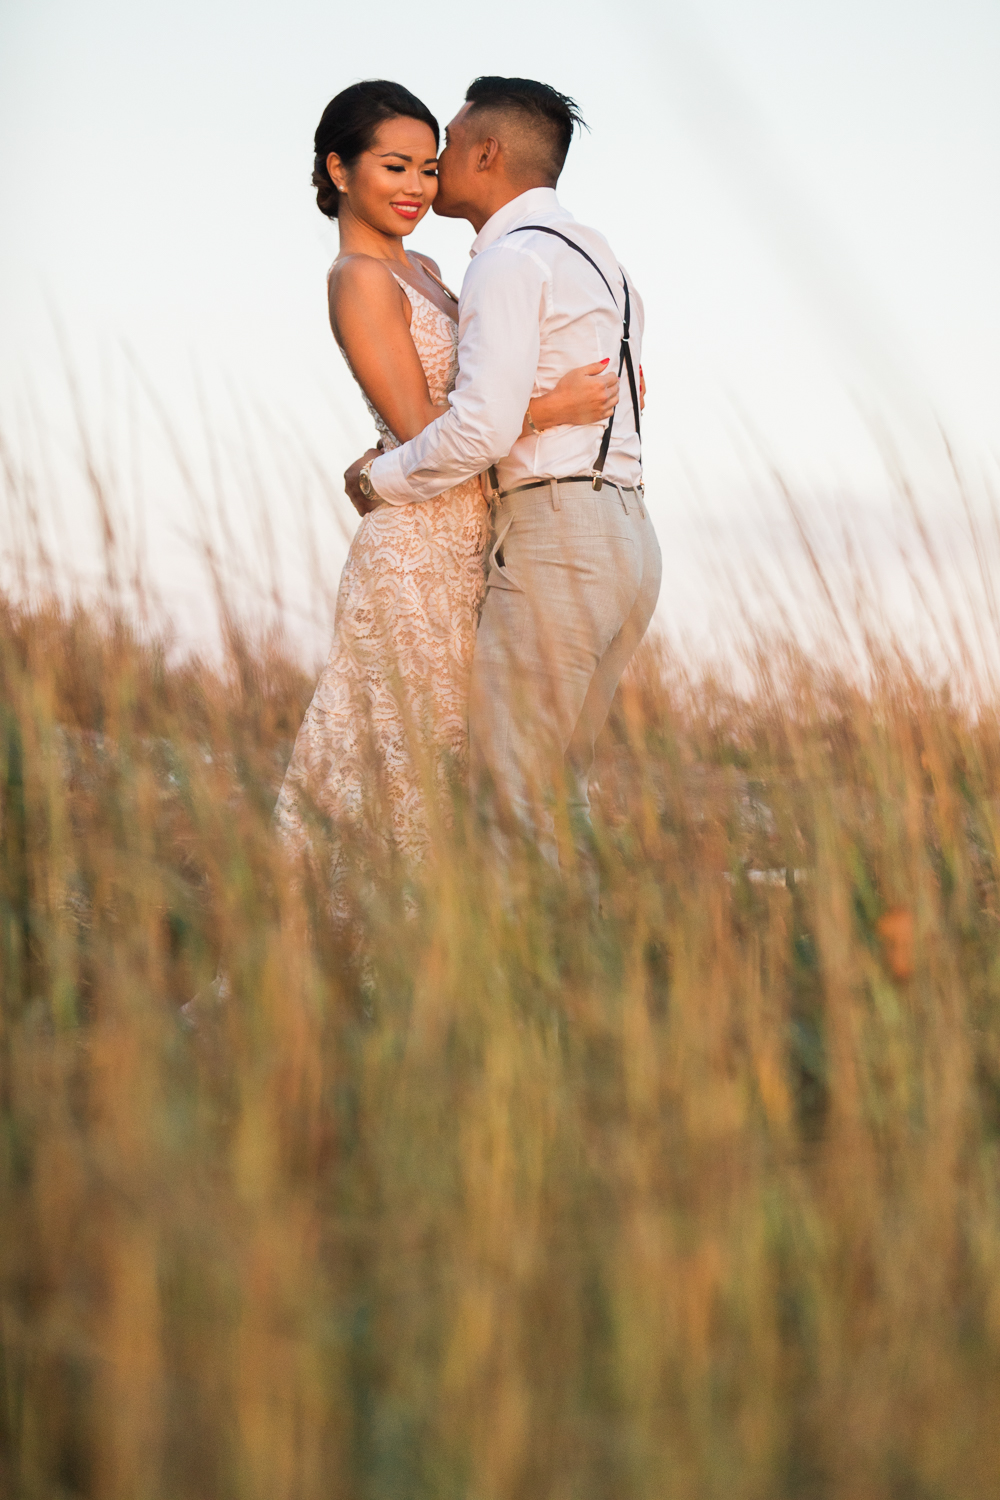 World's End Engagement Session Photos